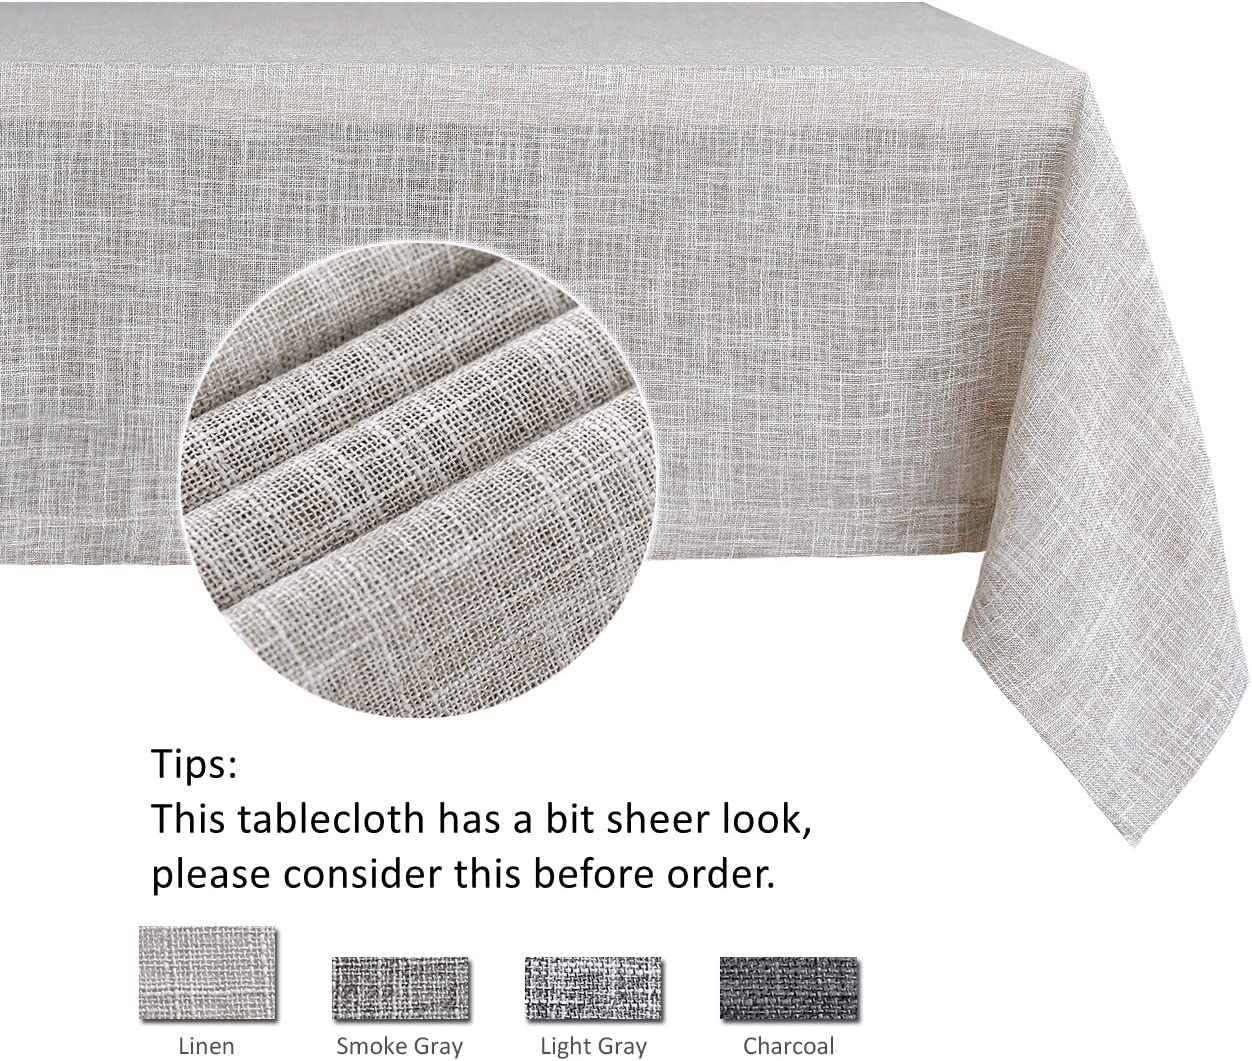 maxmill Flaxy Faux Linen Table Cloth with 2-Tone Slubby Texture Wrinkle Resistant Anti-Shrink Soft Tablecloth for Kitchen Dining Tabletop for Buffet Banquet Rectangle 52 x 70 Inch Linen: Home & Kitchen